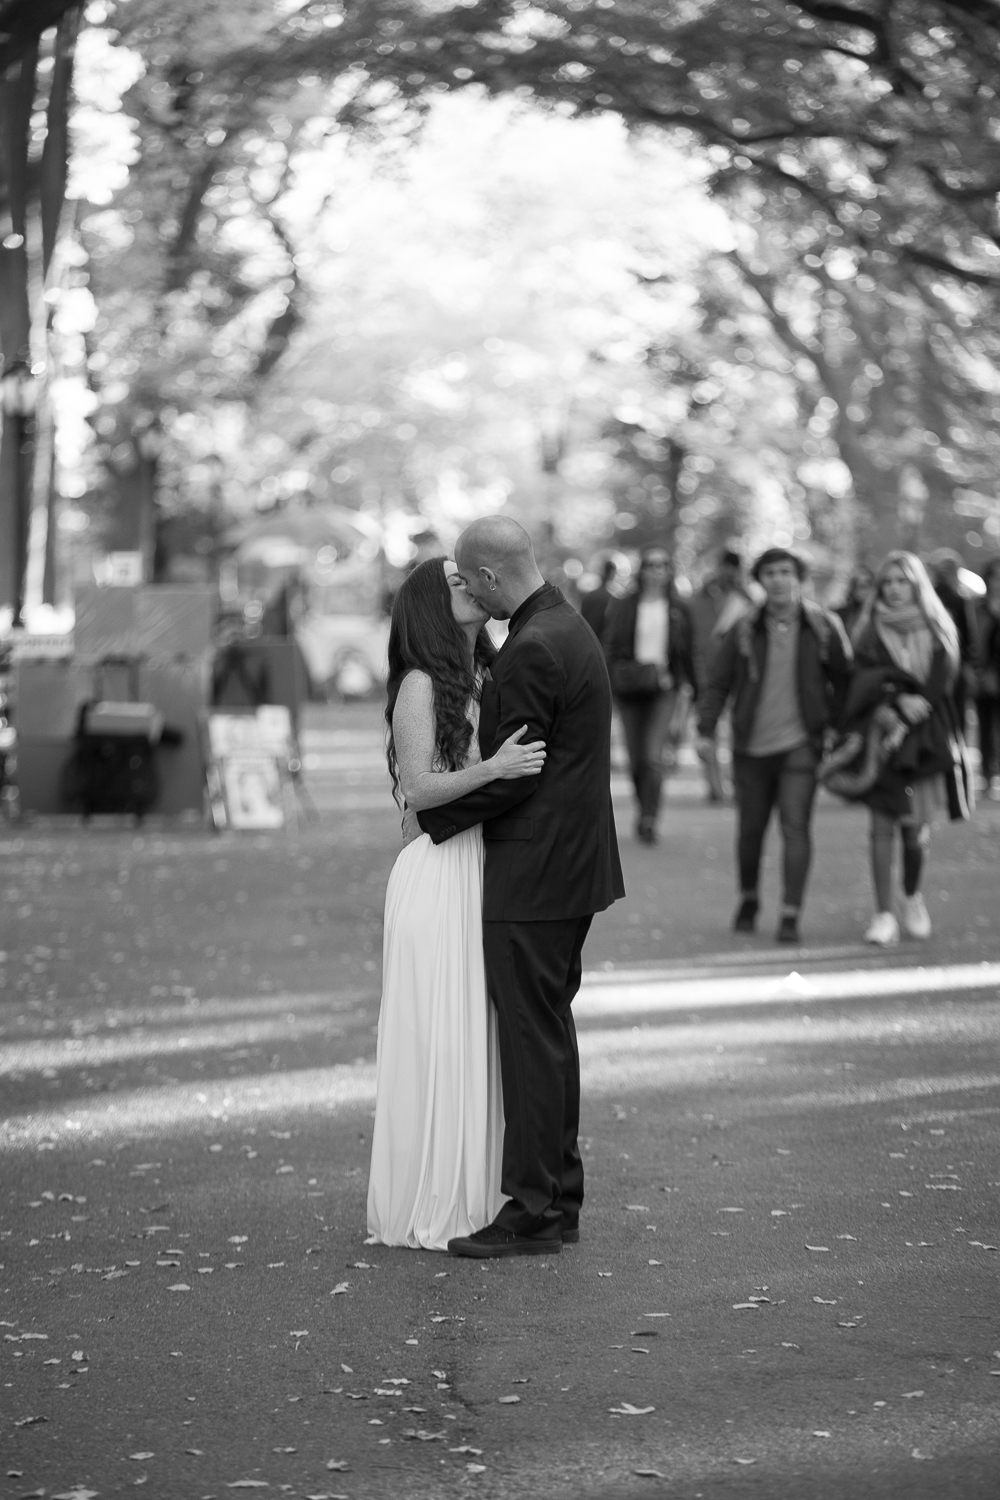 Central-park-wedding-photography-NYC-9.jpg